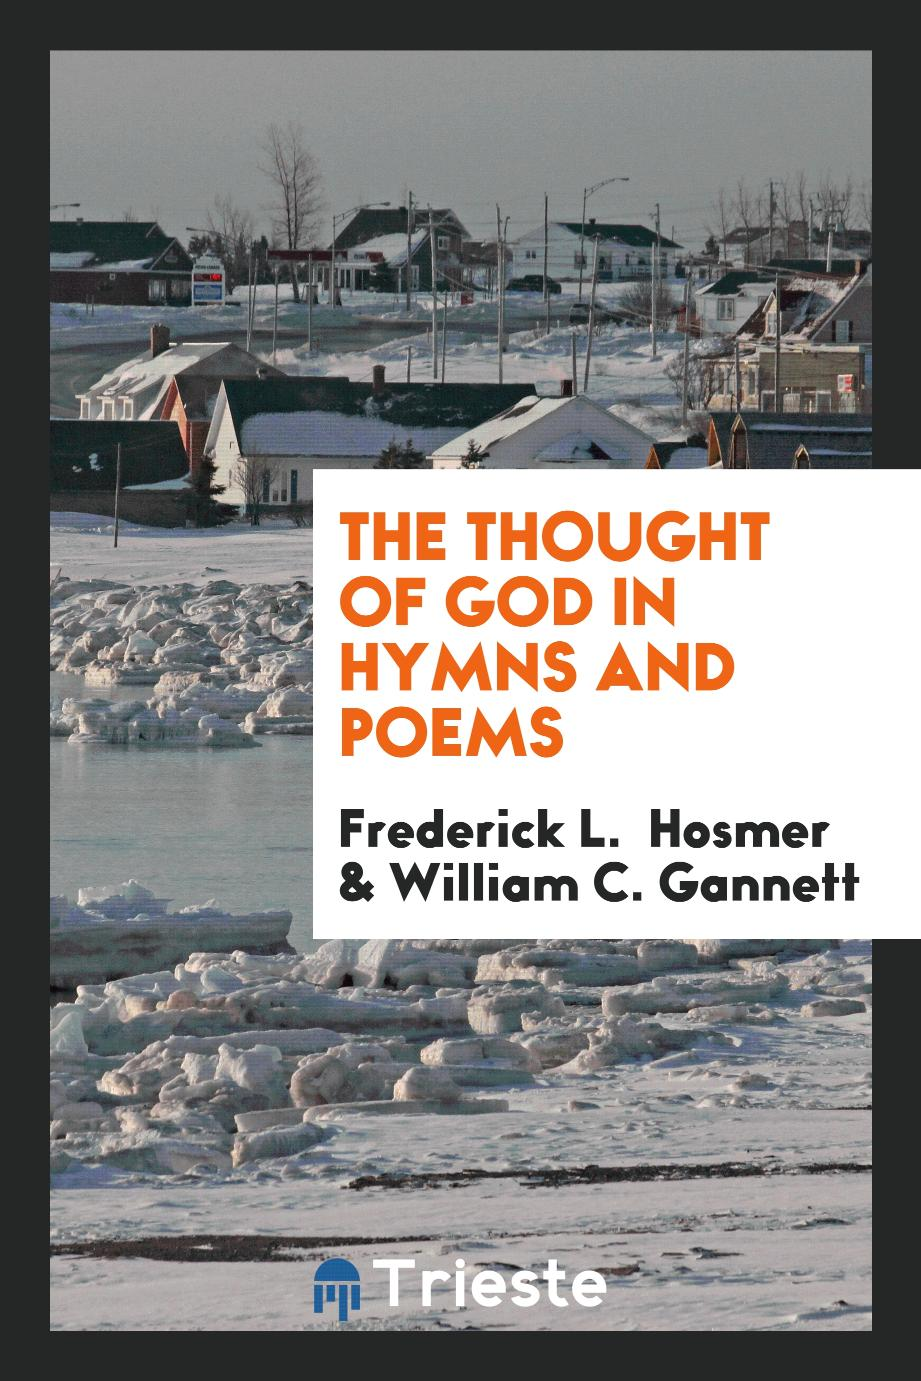 The Thought of God in Hymns and Poems